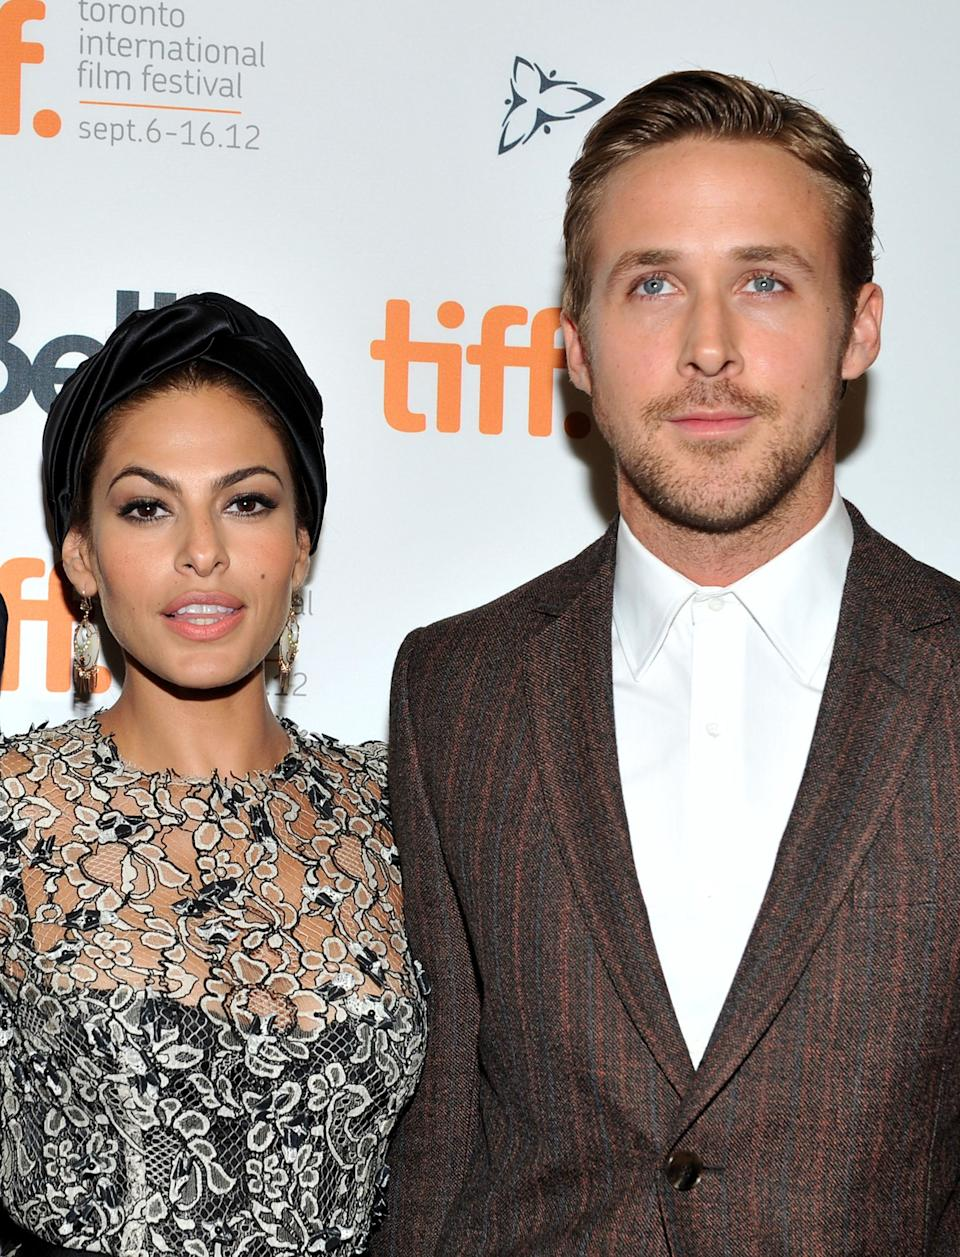 """Eva Mendes and Ryan Gosling attend """"The Place Beyond The Pines"""" premiere during the 2012 Toronto International Film Festival at Princess of Wales Theatre on September 7, 2012 in Toronto, Canada. (Photo: Sonia Recchia via Getty Images)"""